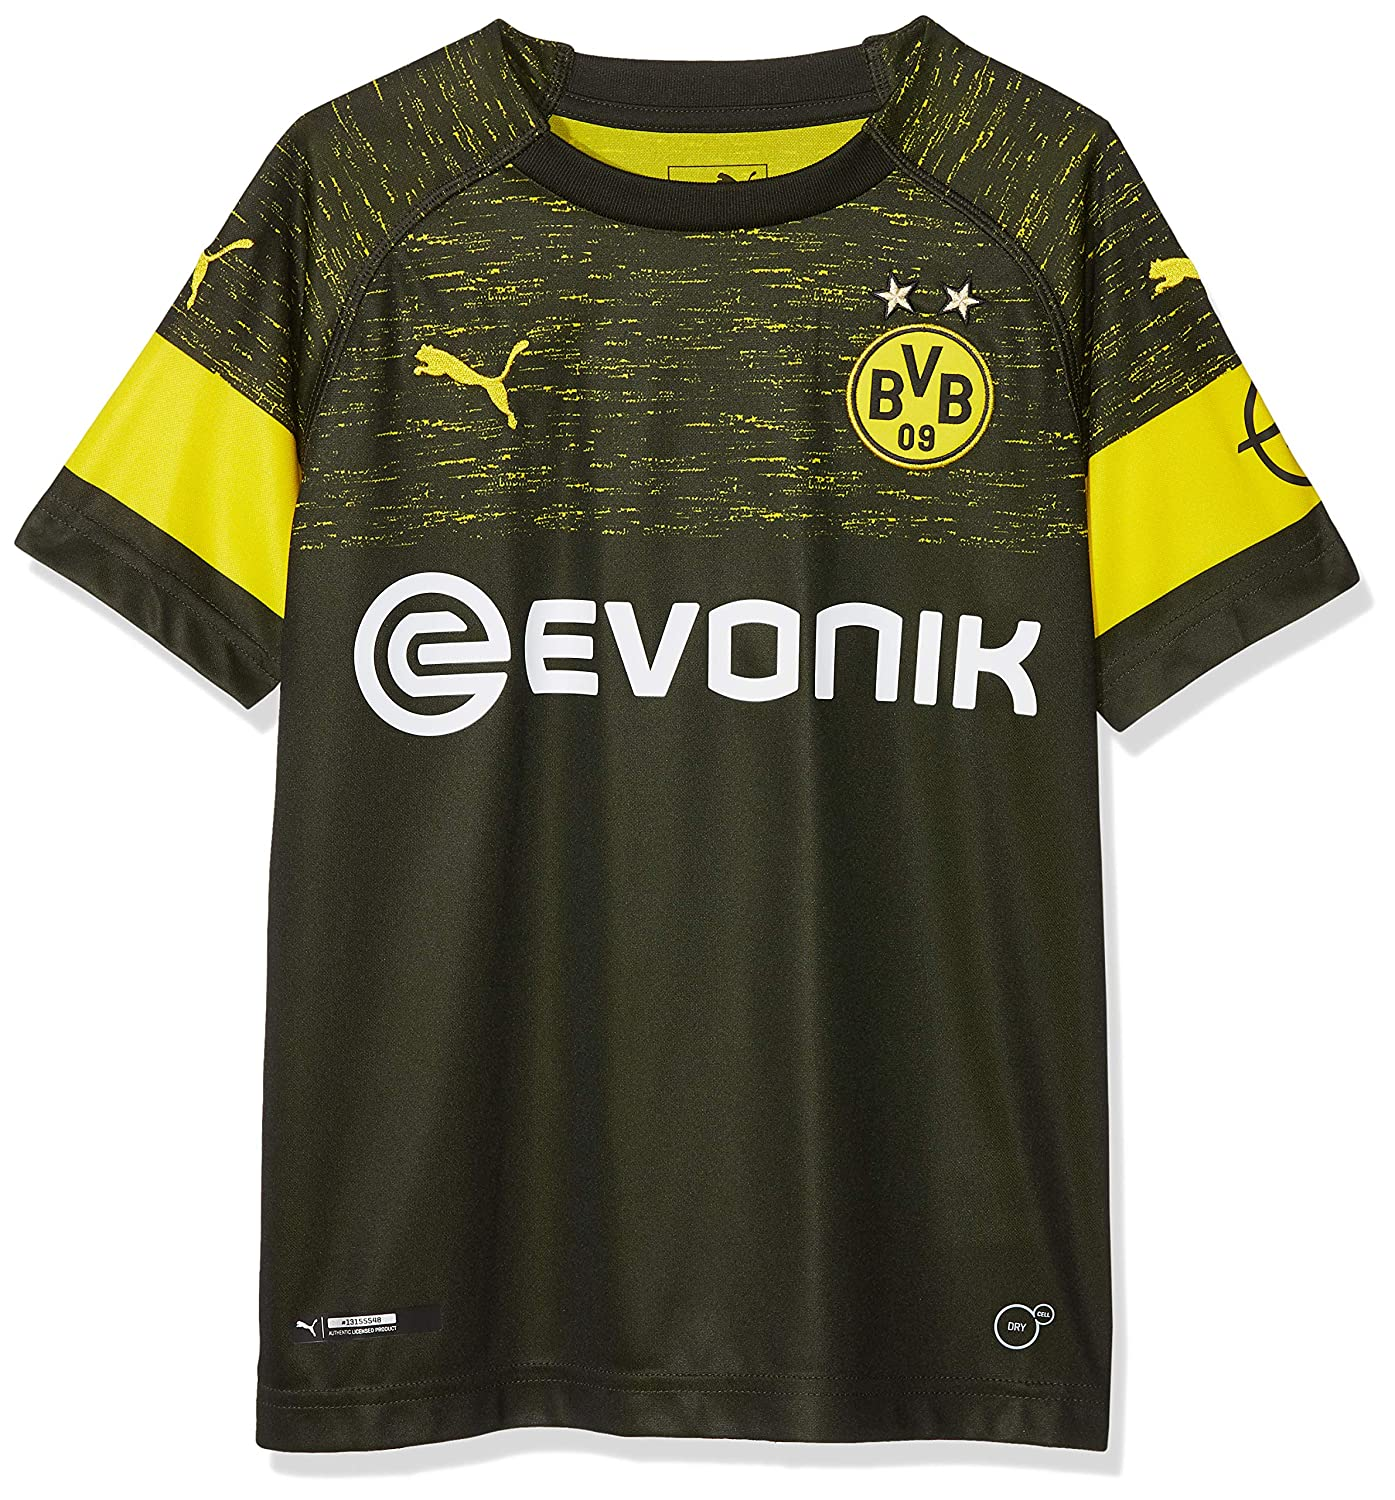 Puma Kinder BVB Away Shirt Replica Jr Evonik with Opel Logo Trikot